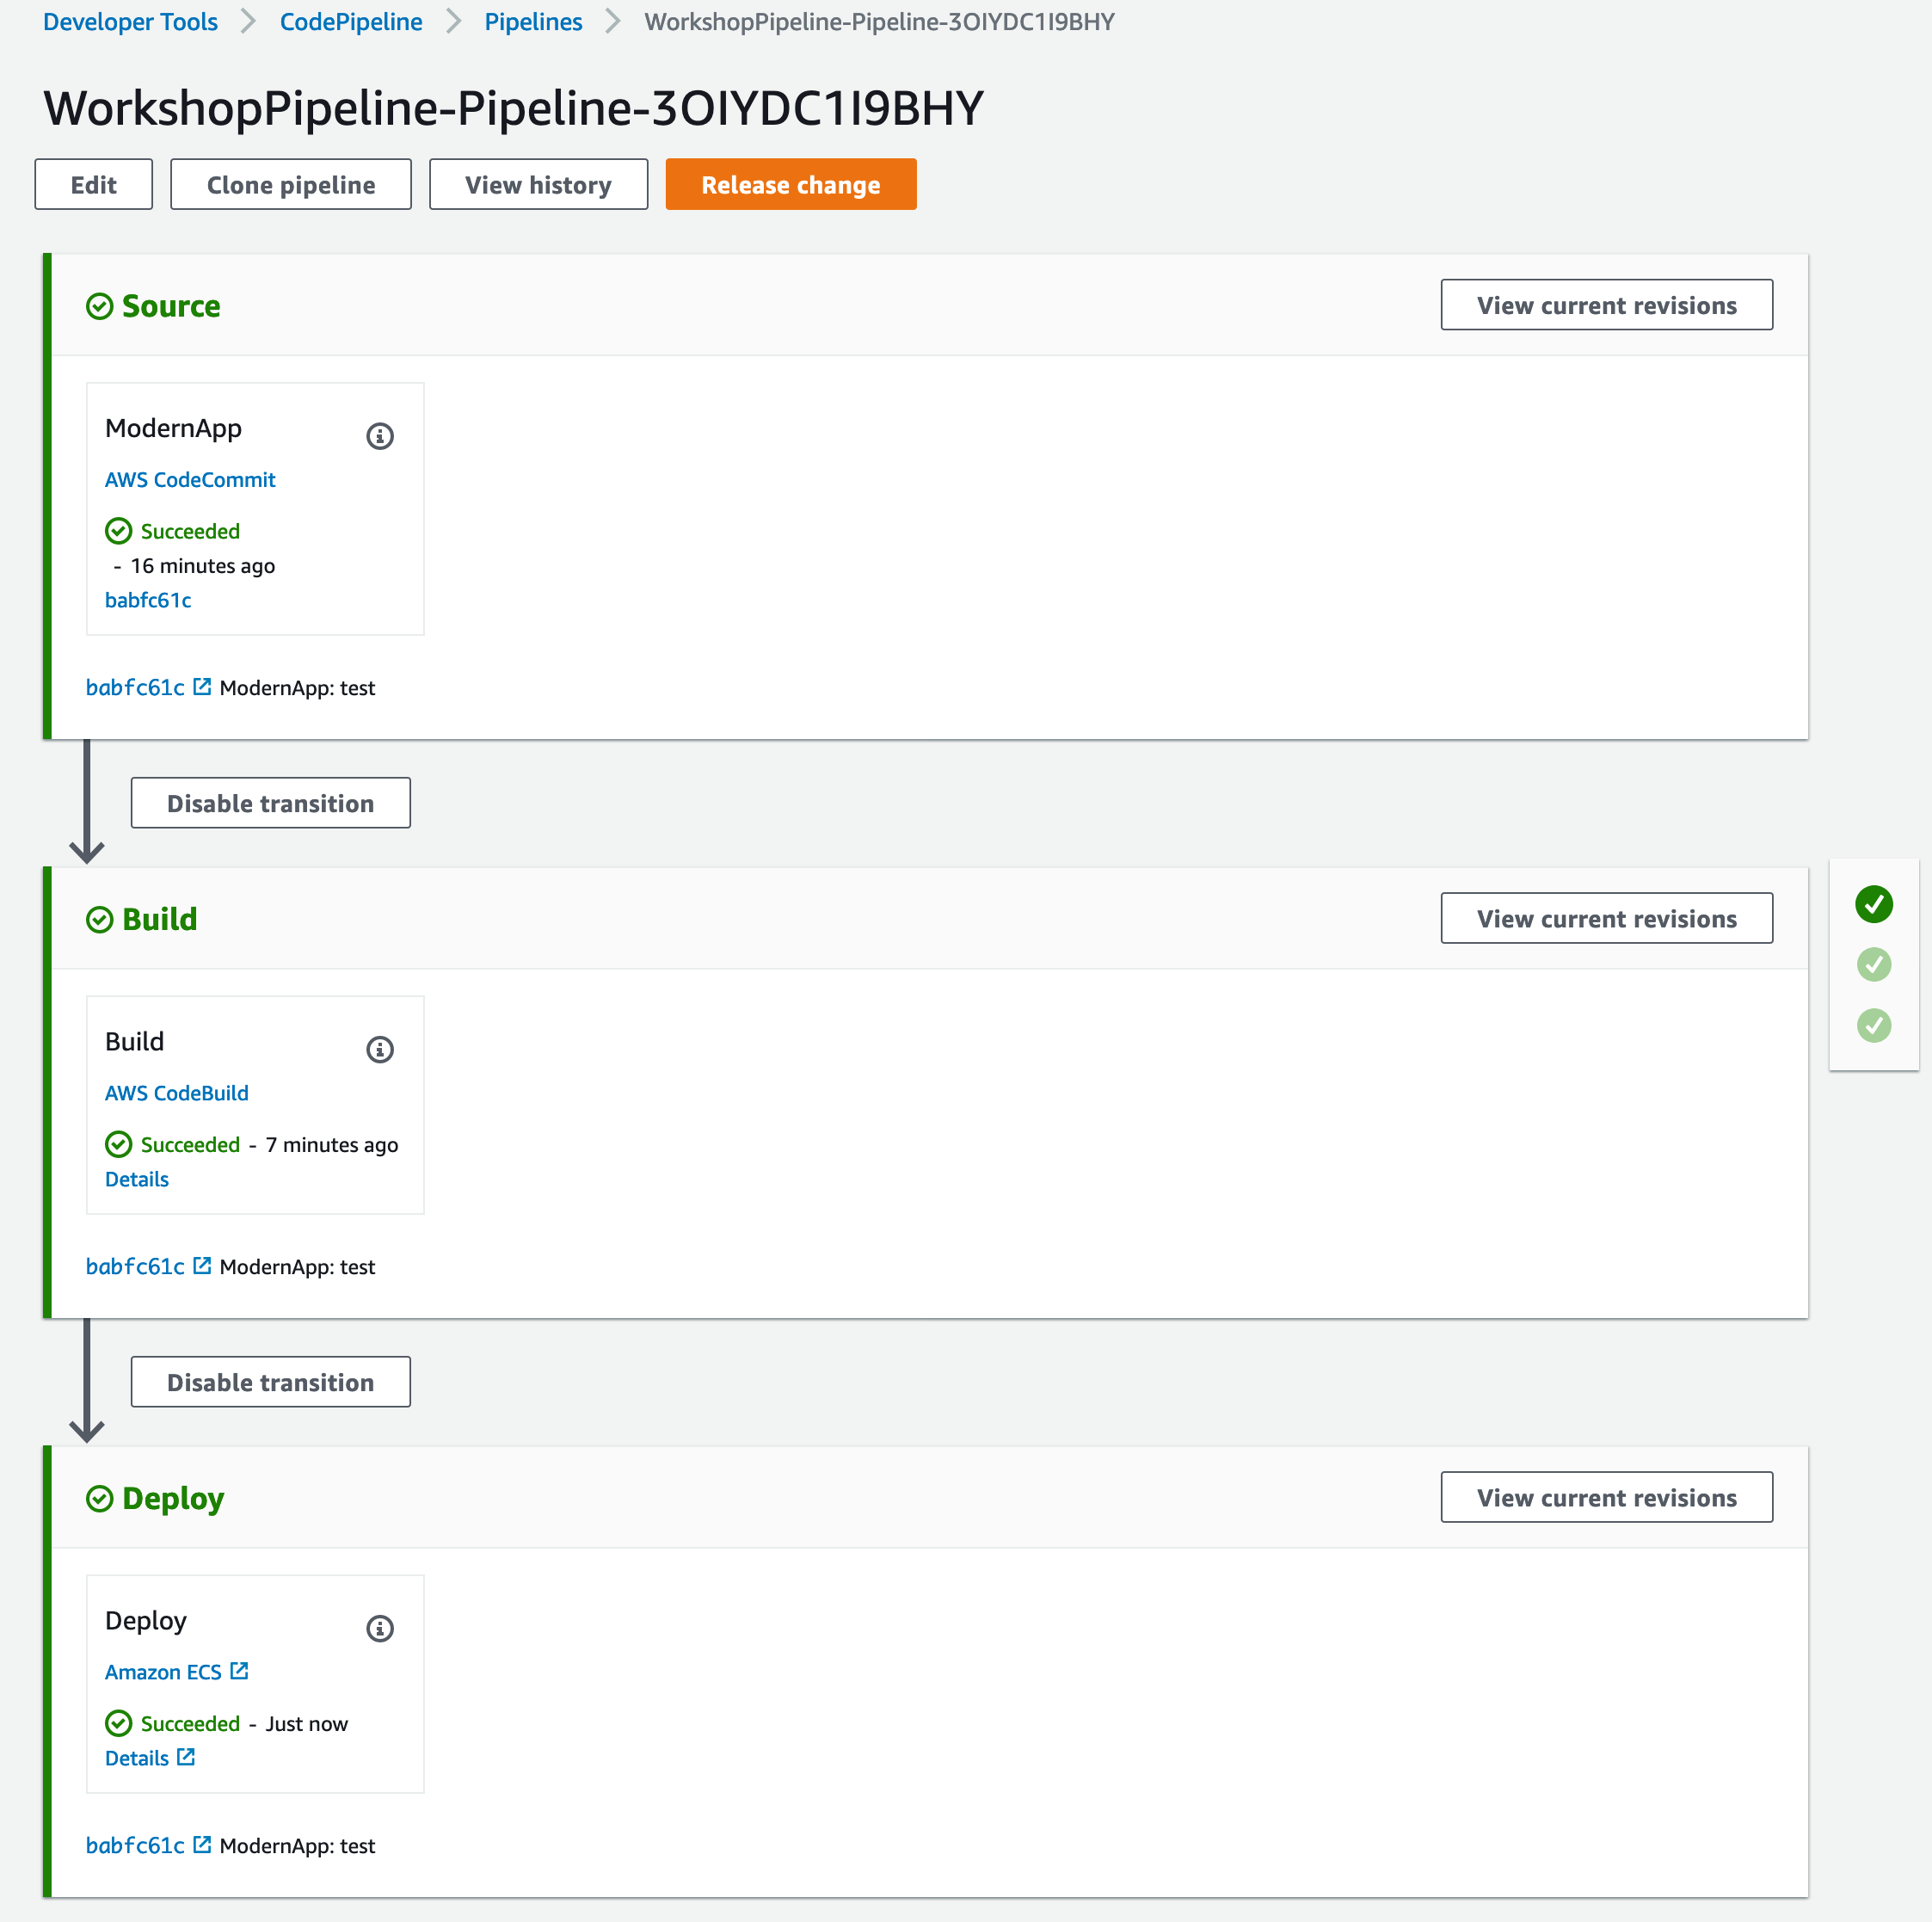 CodePipeline View